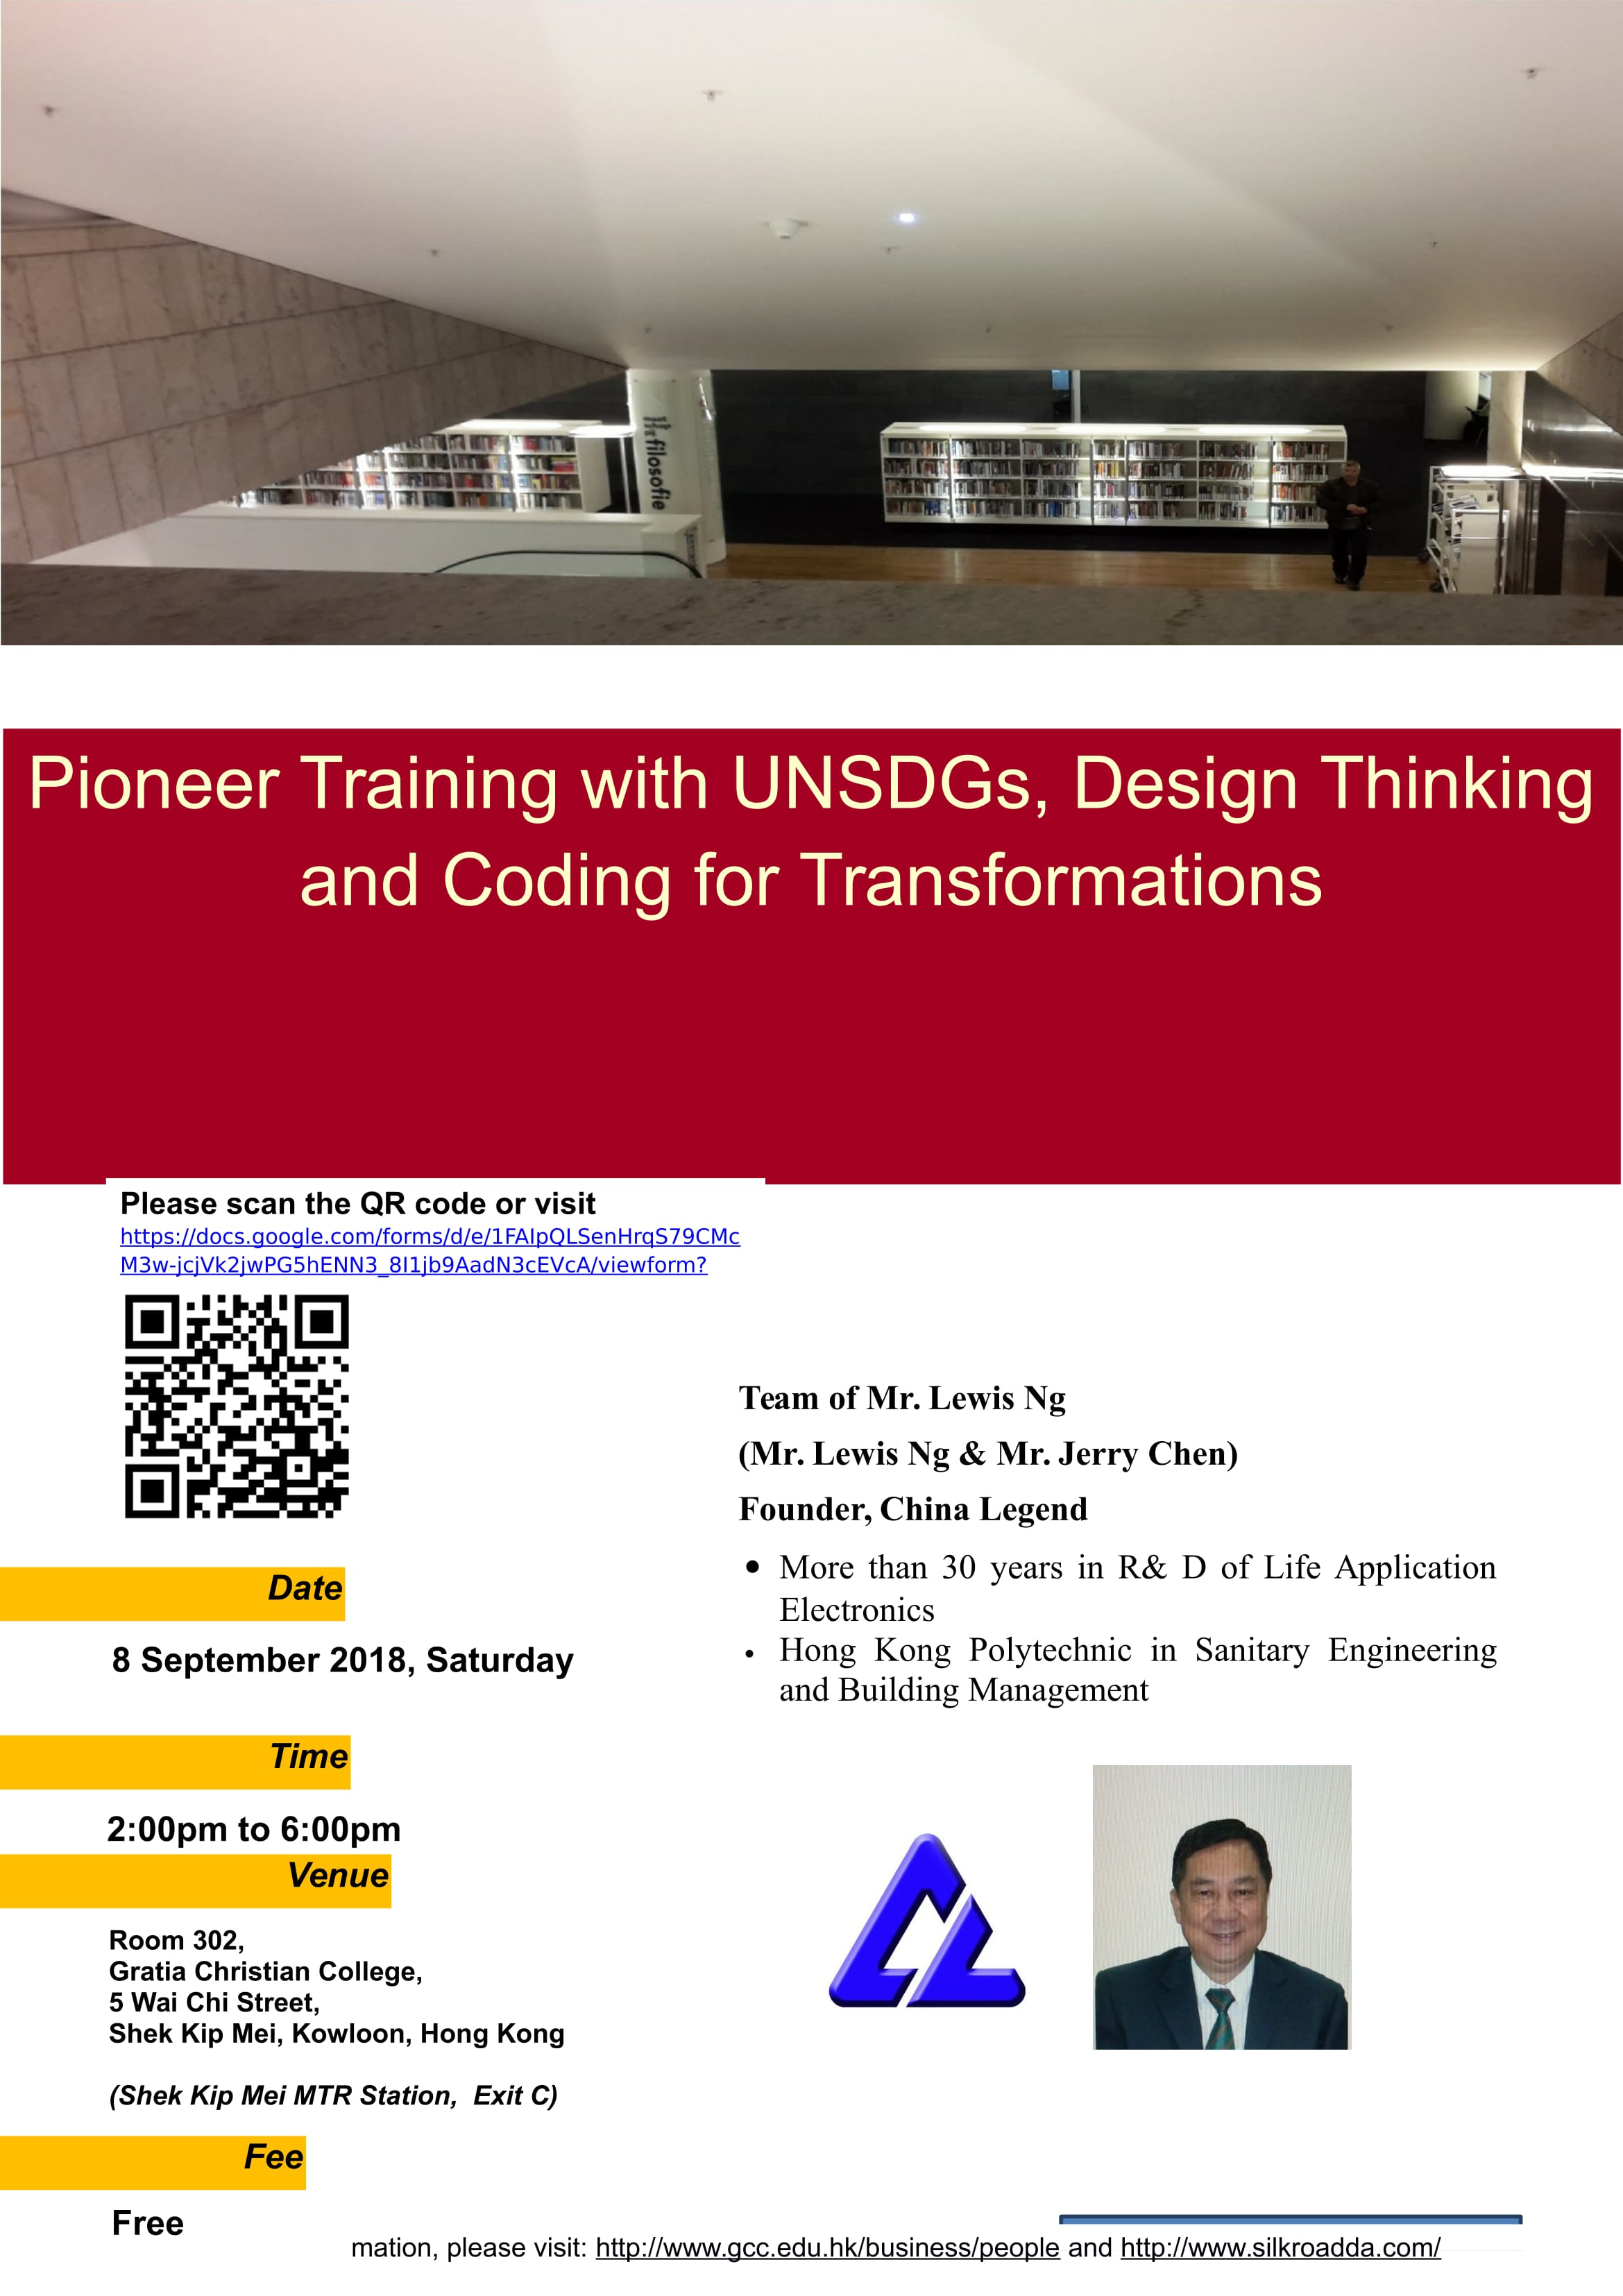 Pioneer-Training-with-UNSDGs-Design-Thinking-and-Coding-for-Transformations-20180908-12